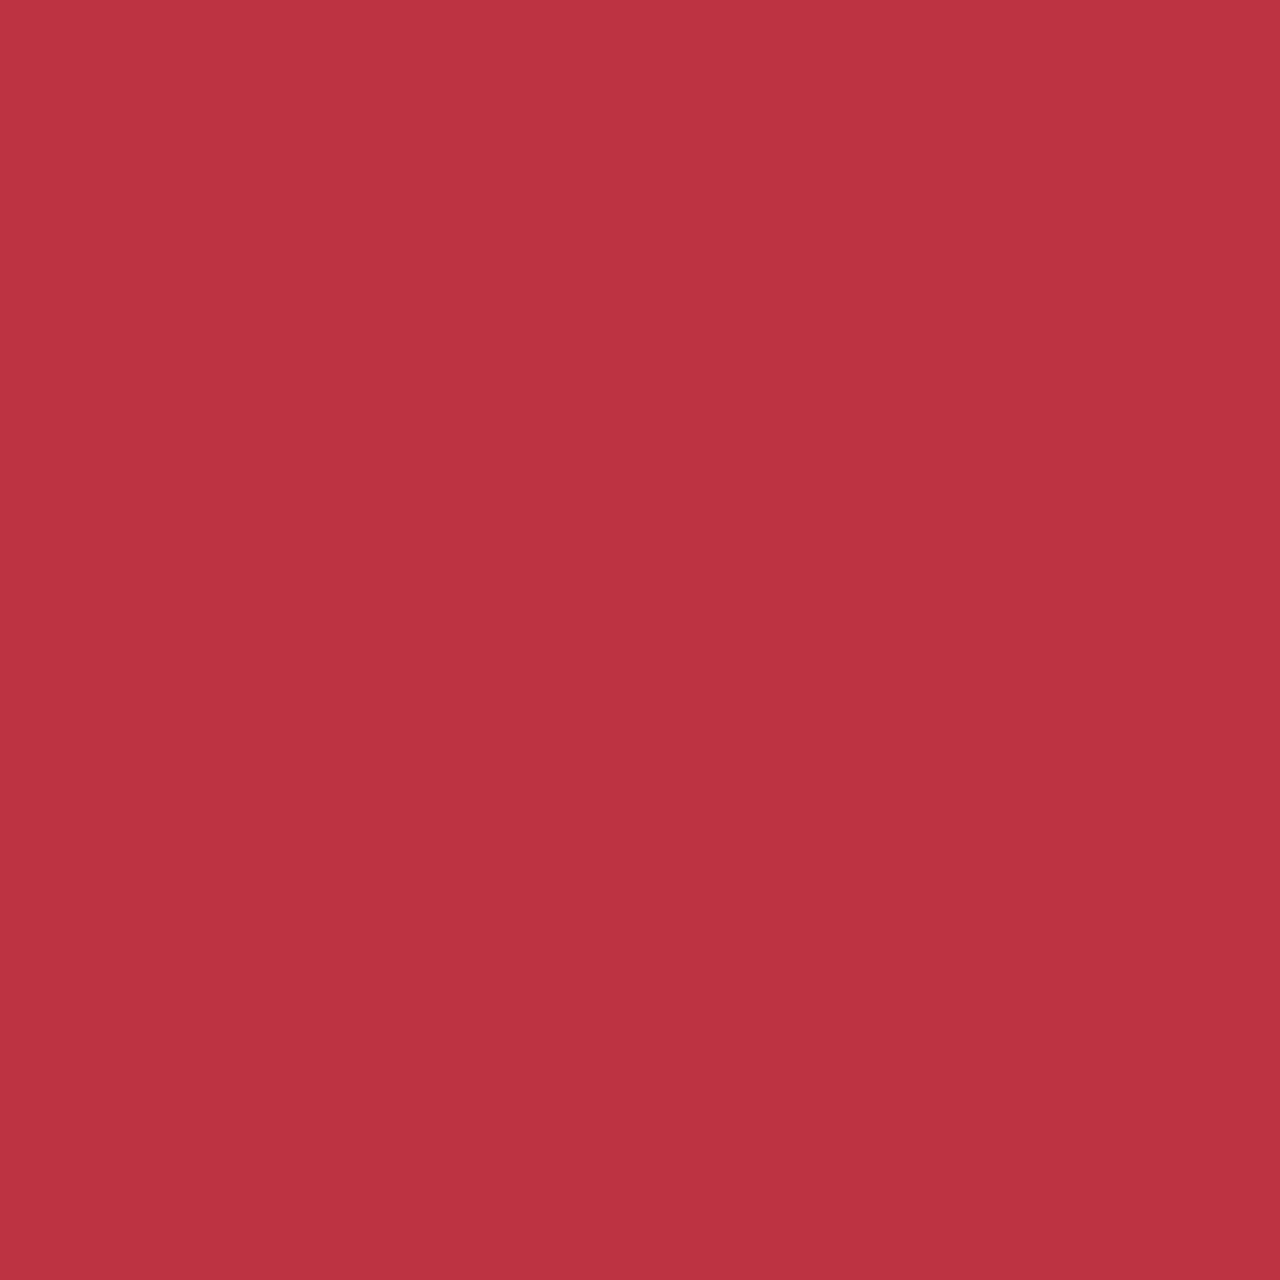 #0124 Rosco Gels Roscolux Red Cyc Silk, 20x24""